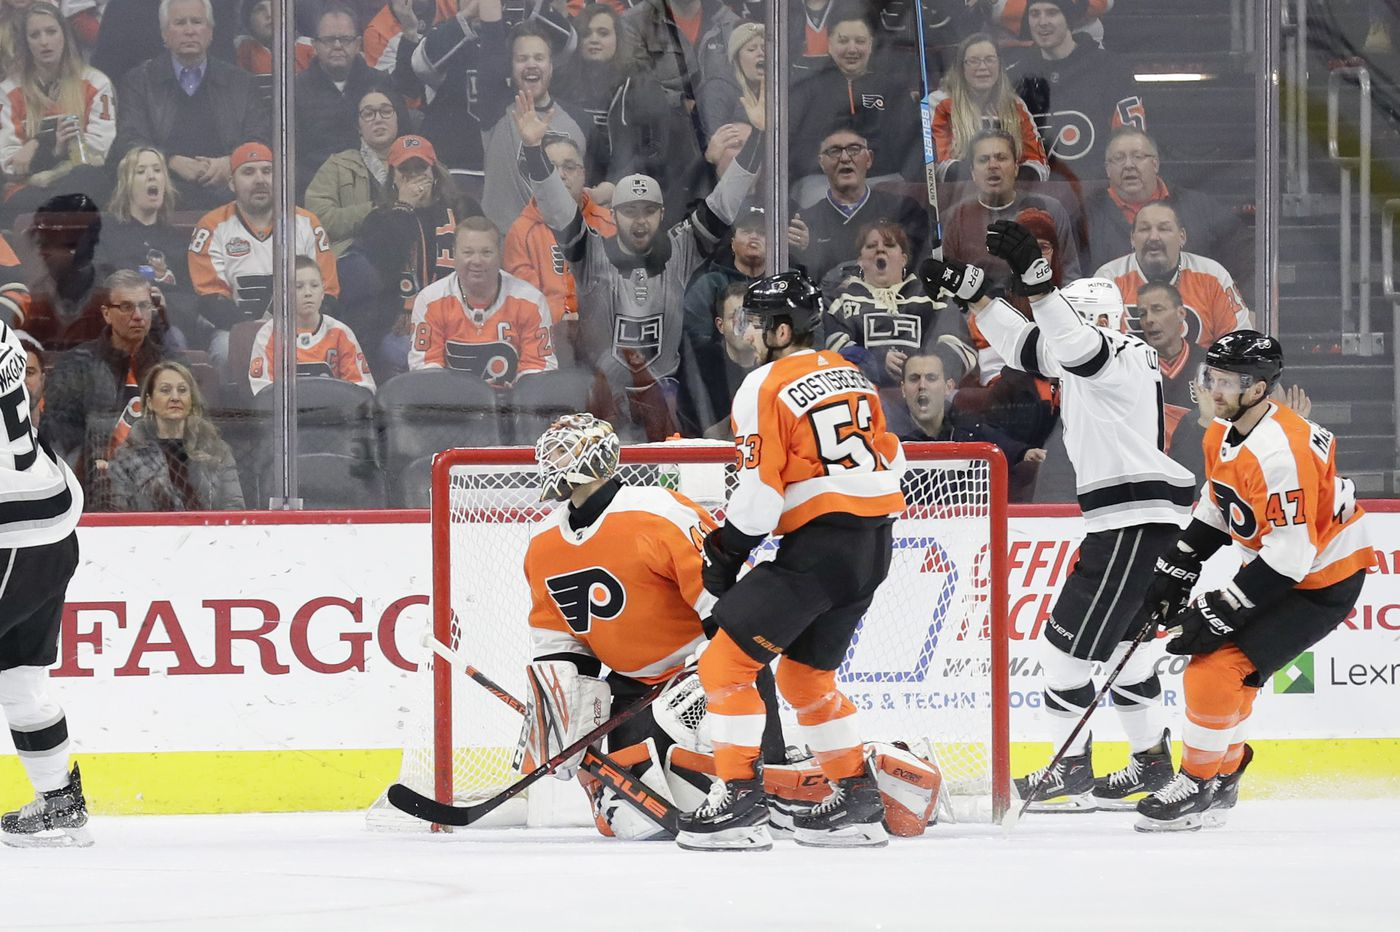 For the Flyers, getting the game's first goal is critical   Inside the numbers